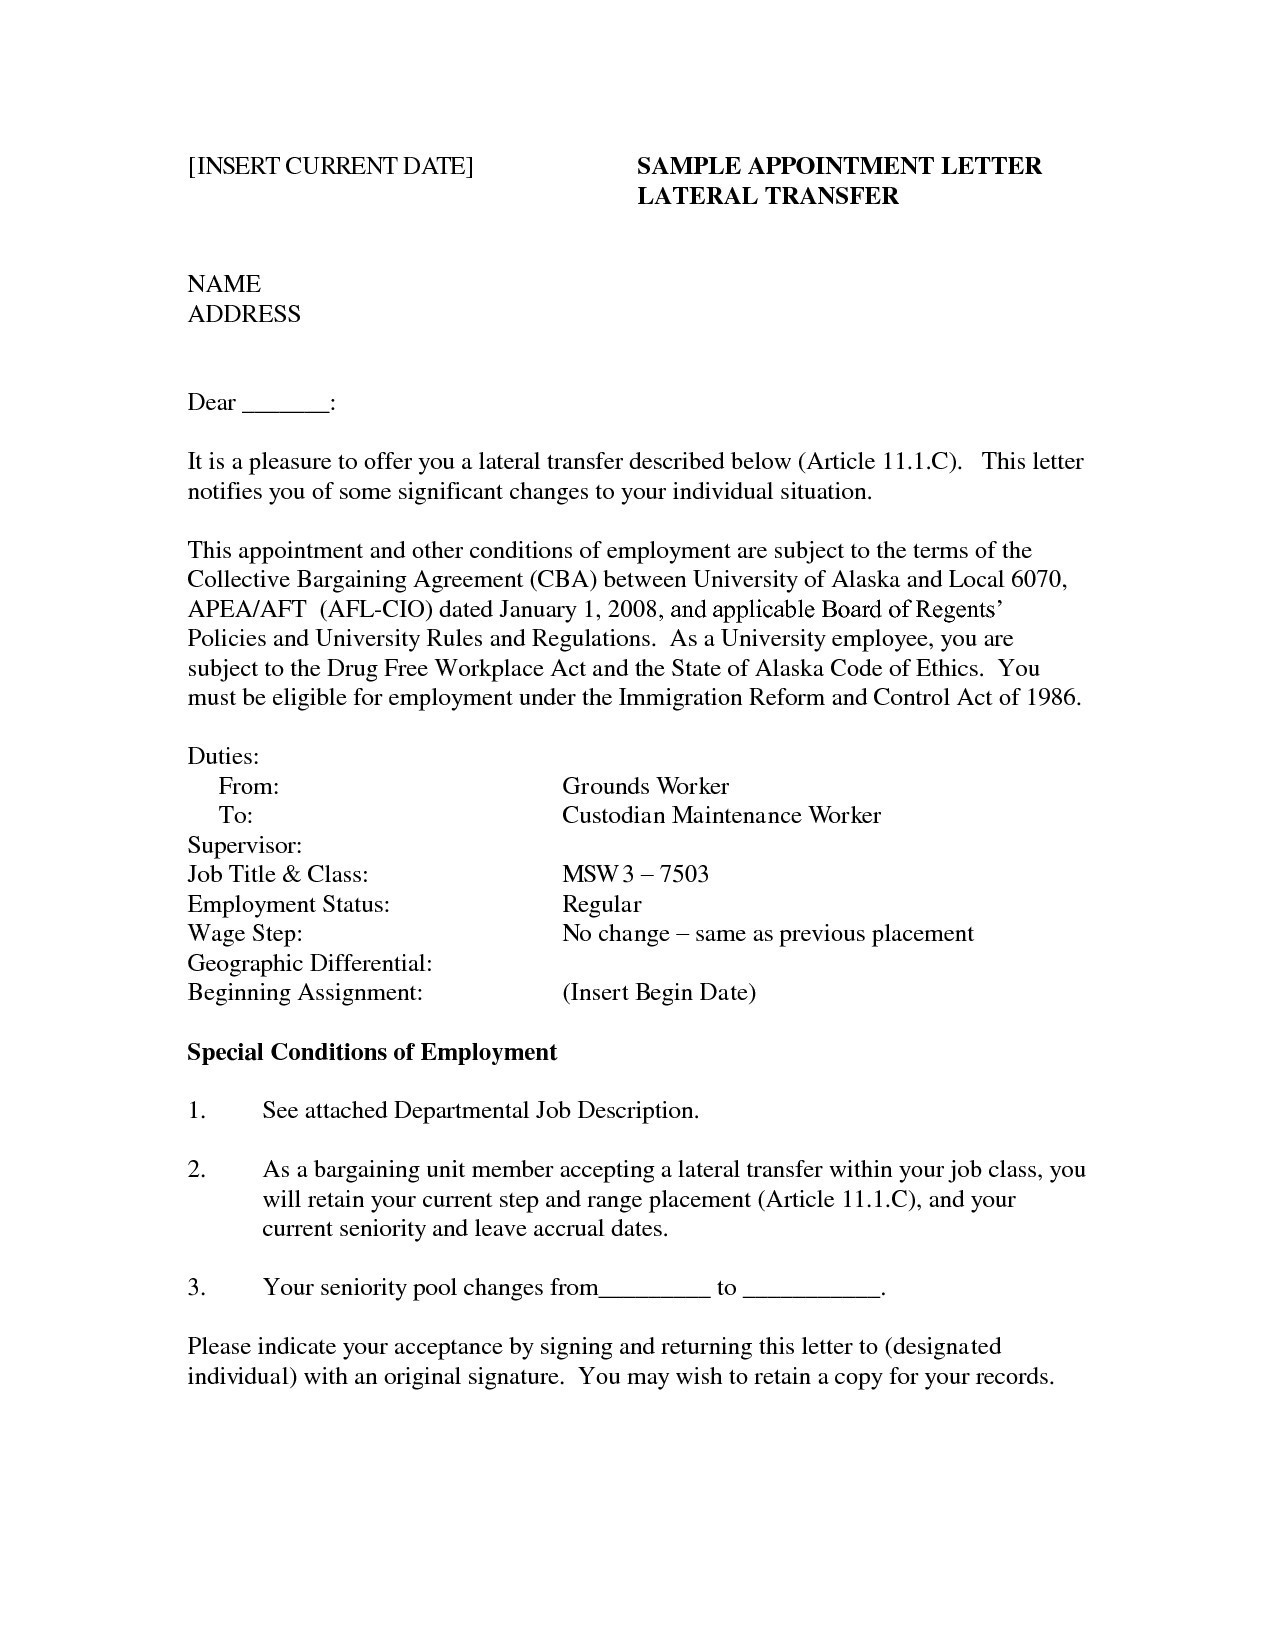 Letter Of Substantial Completion Template - Job Application Letter format Template Copy Cover Letter Template Hr